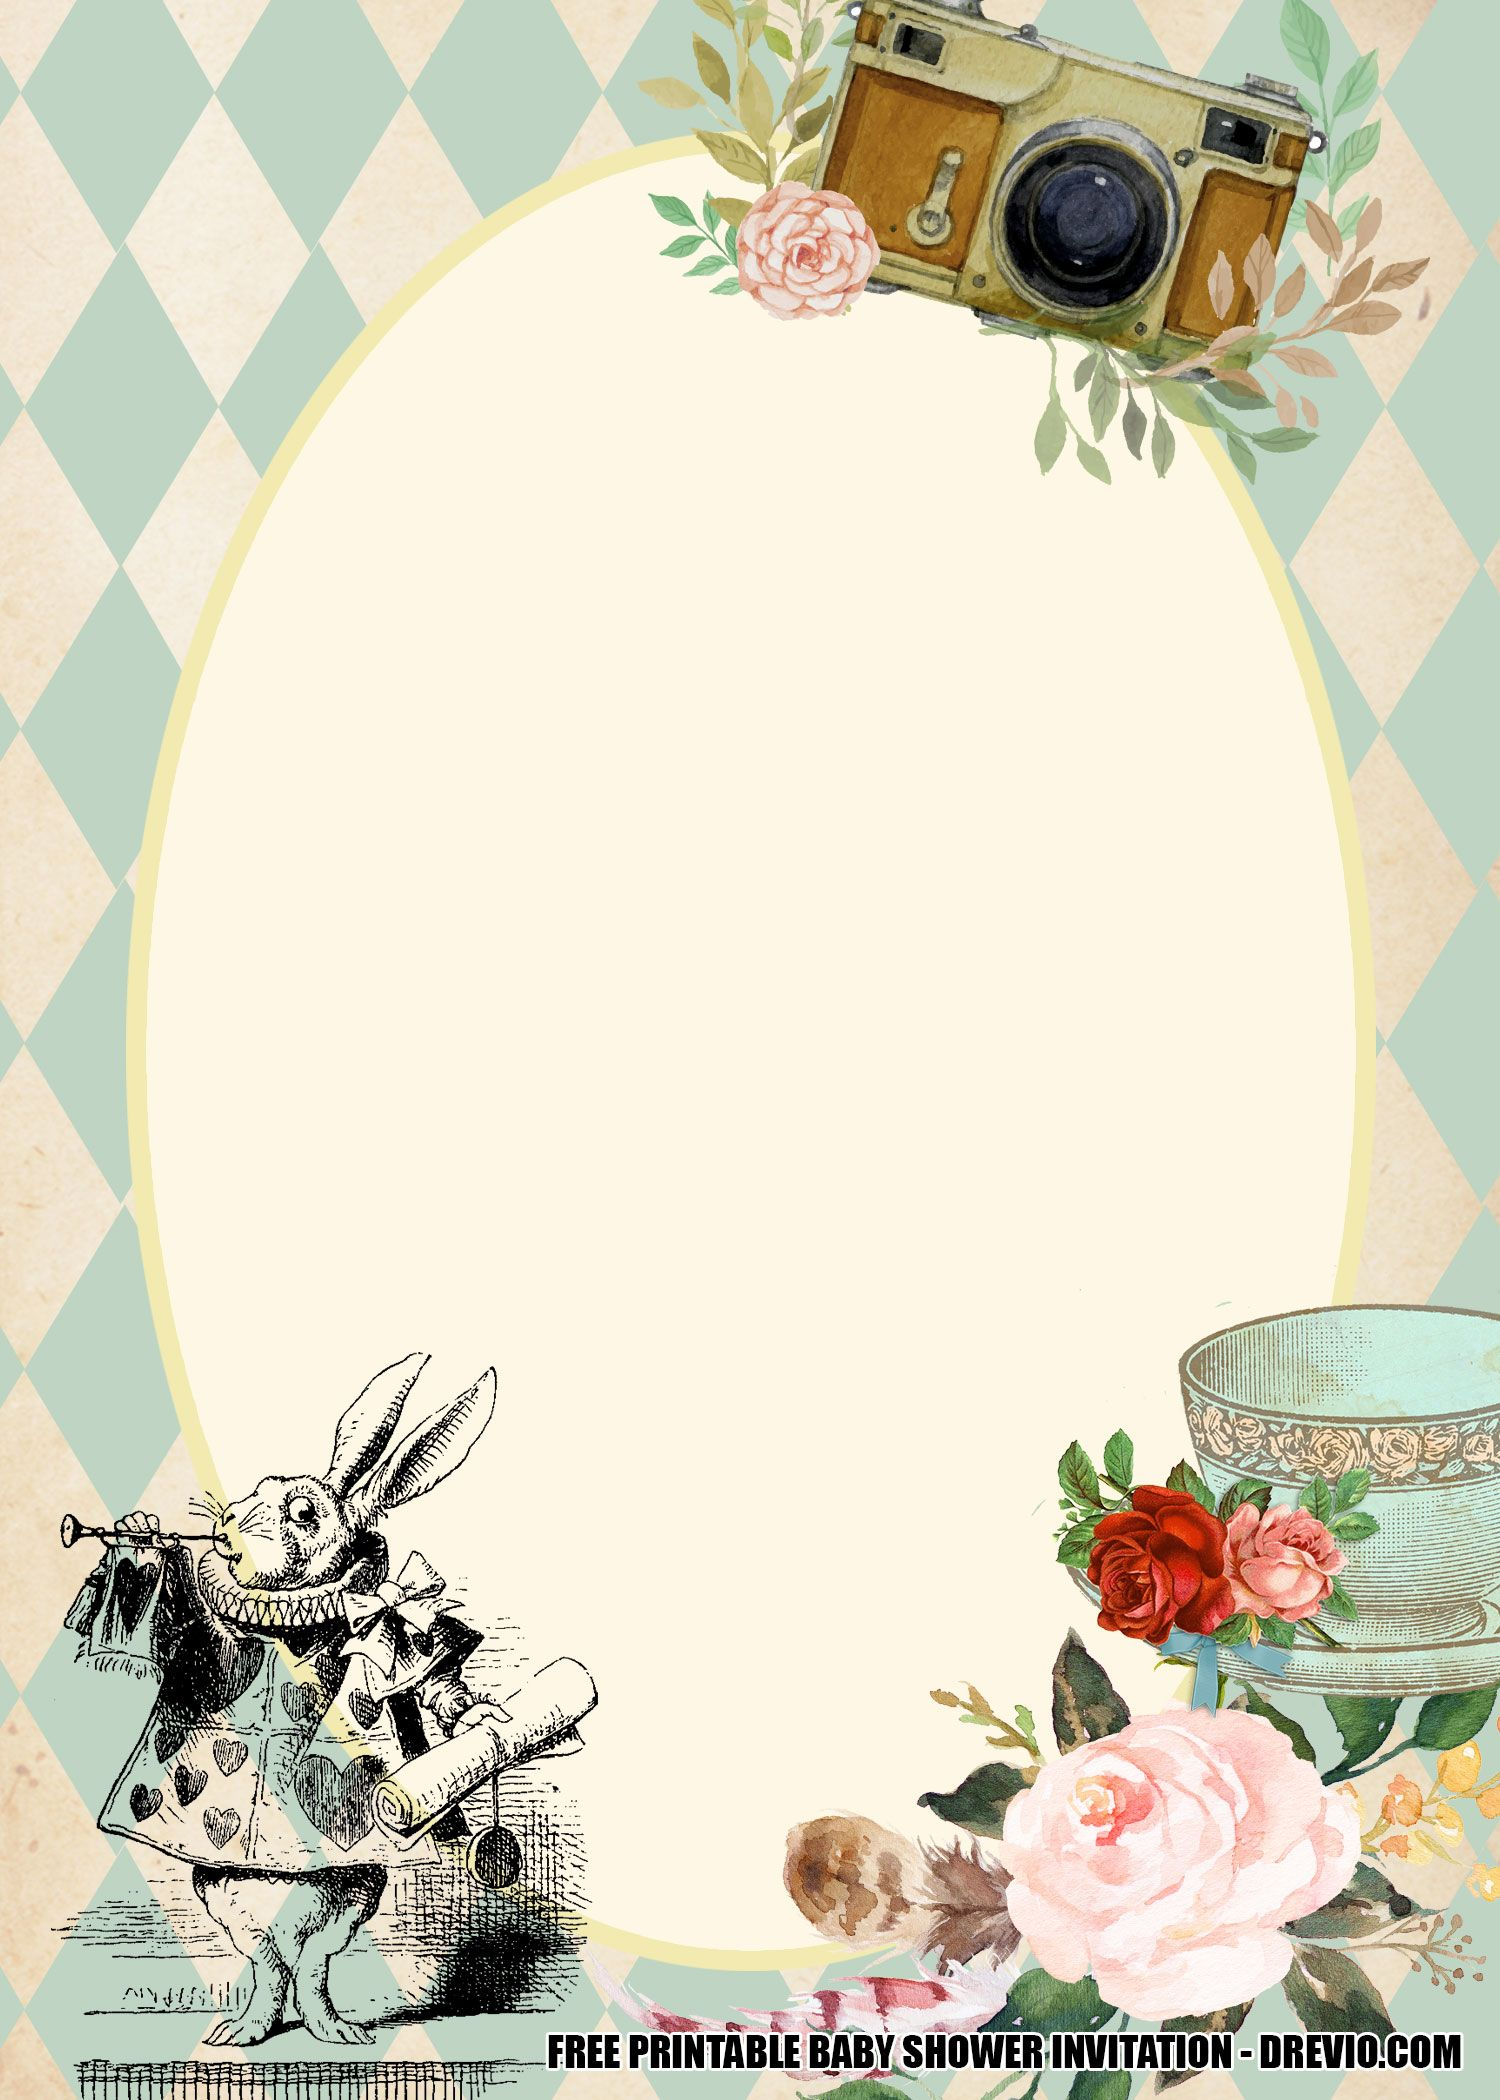 5 + Alice in Wonderland Baby Shower Invitation Template For Free